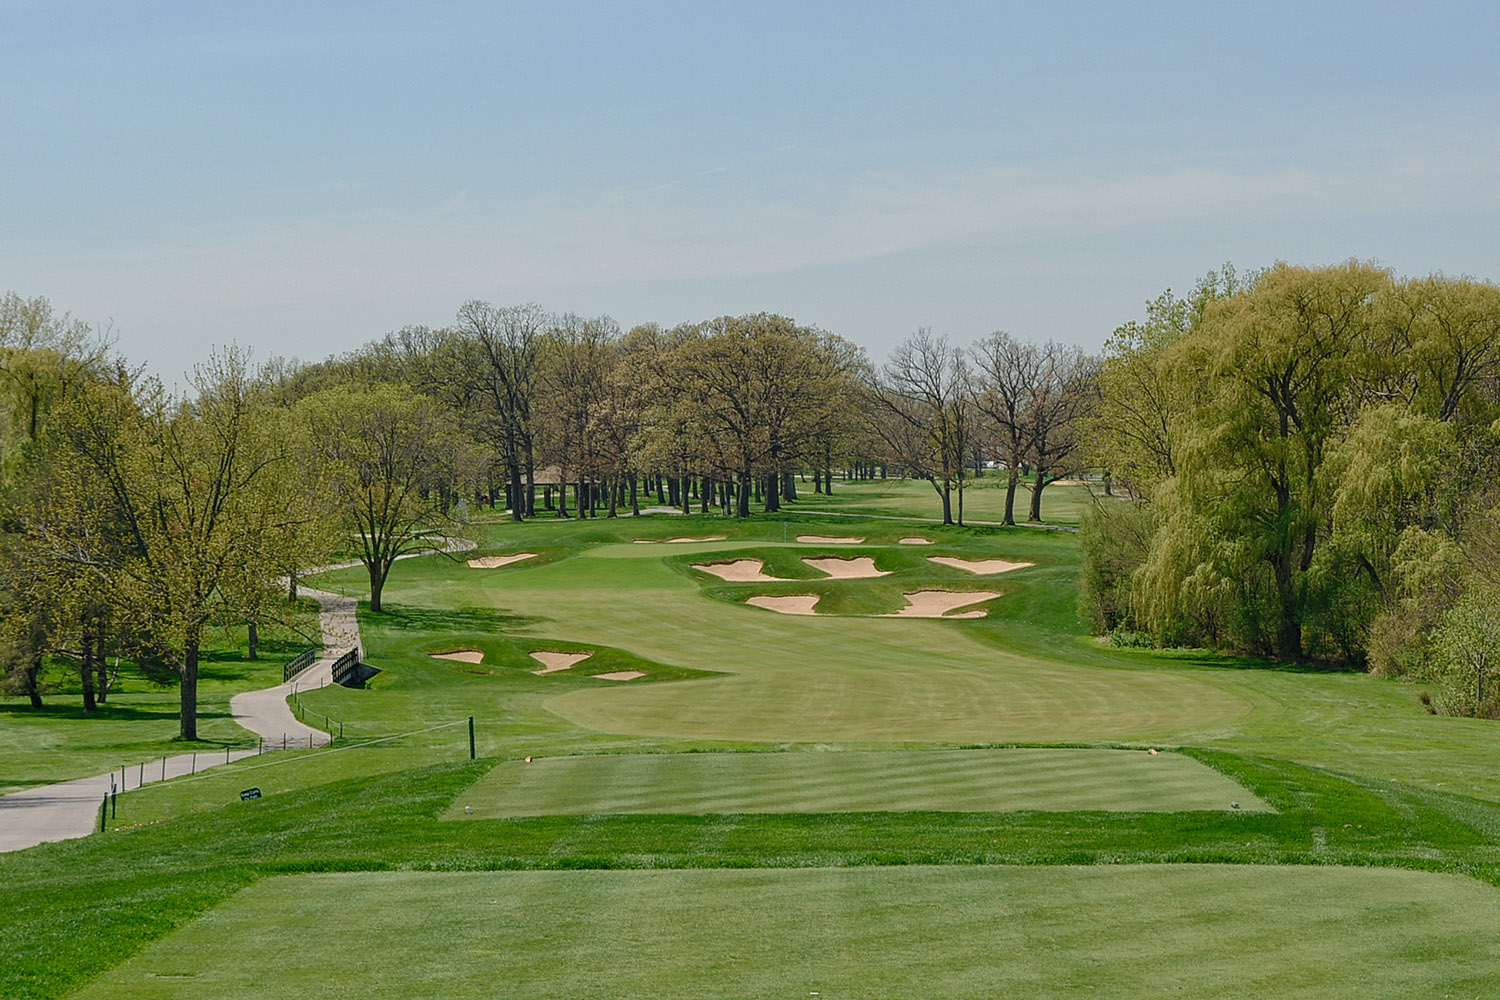 Cog Hill Golf: Dubsdread is One of the Best Public Courses in America